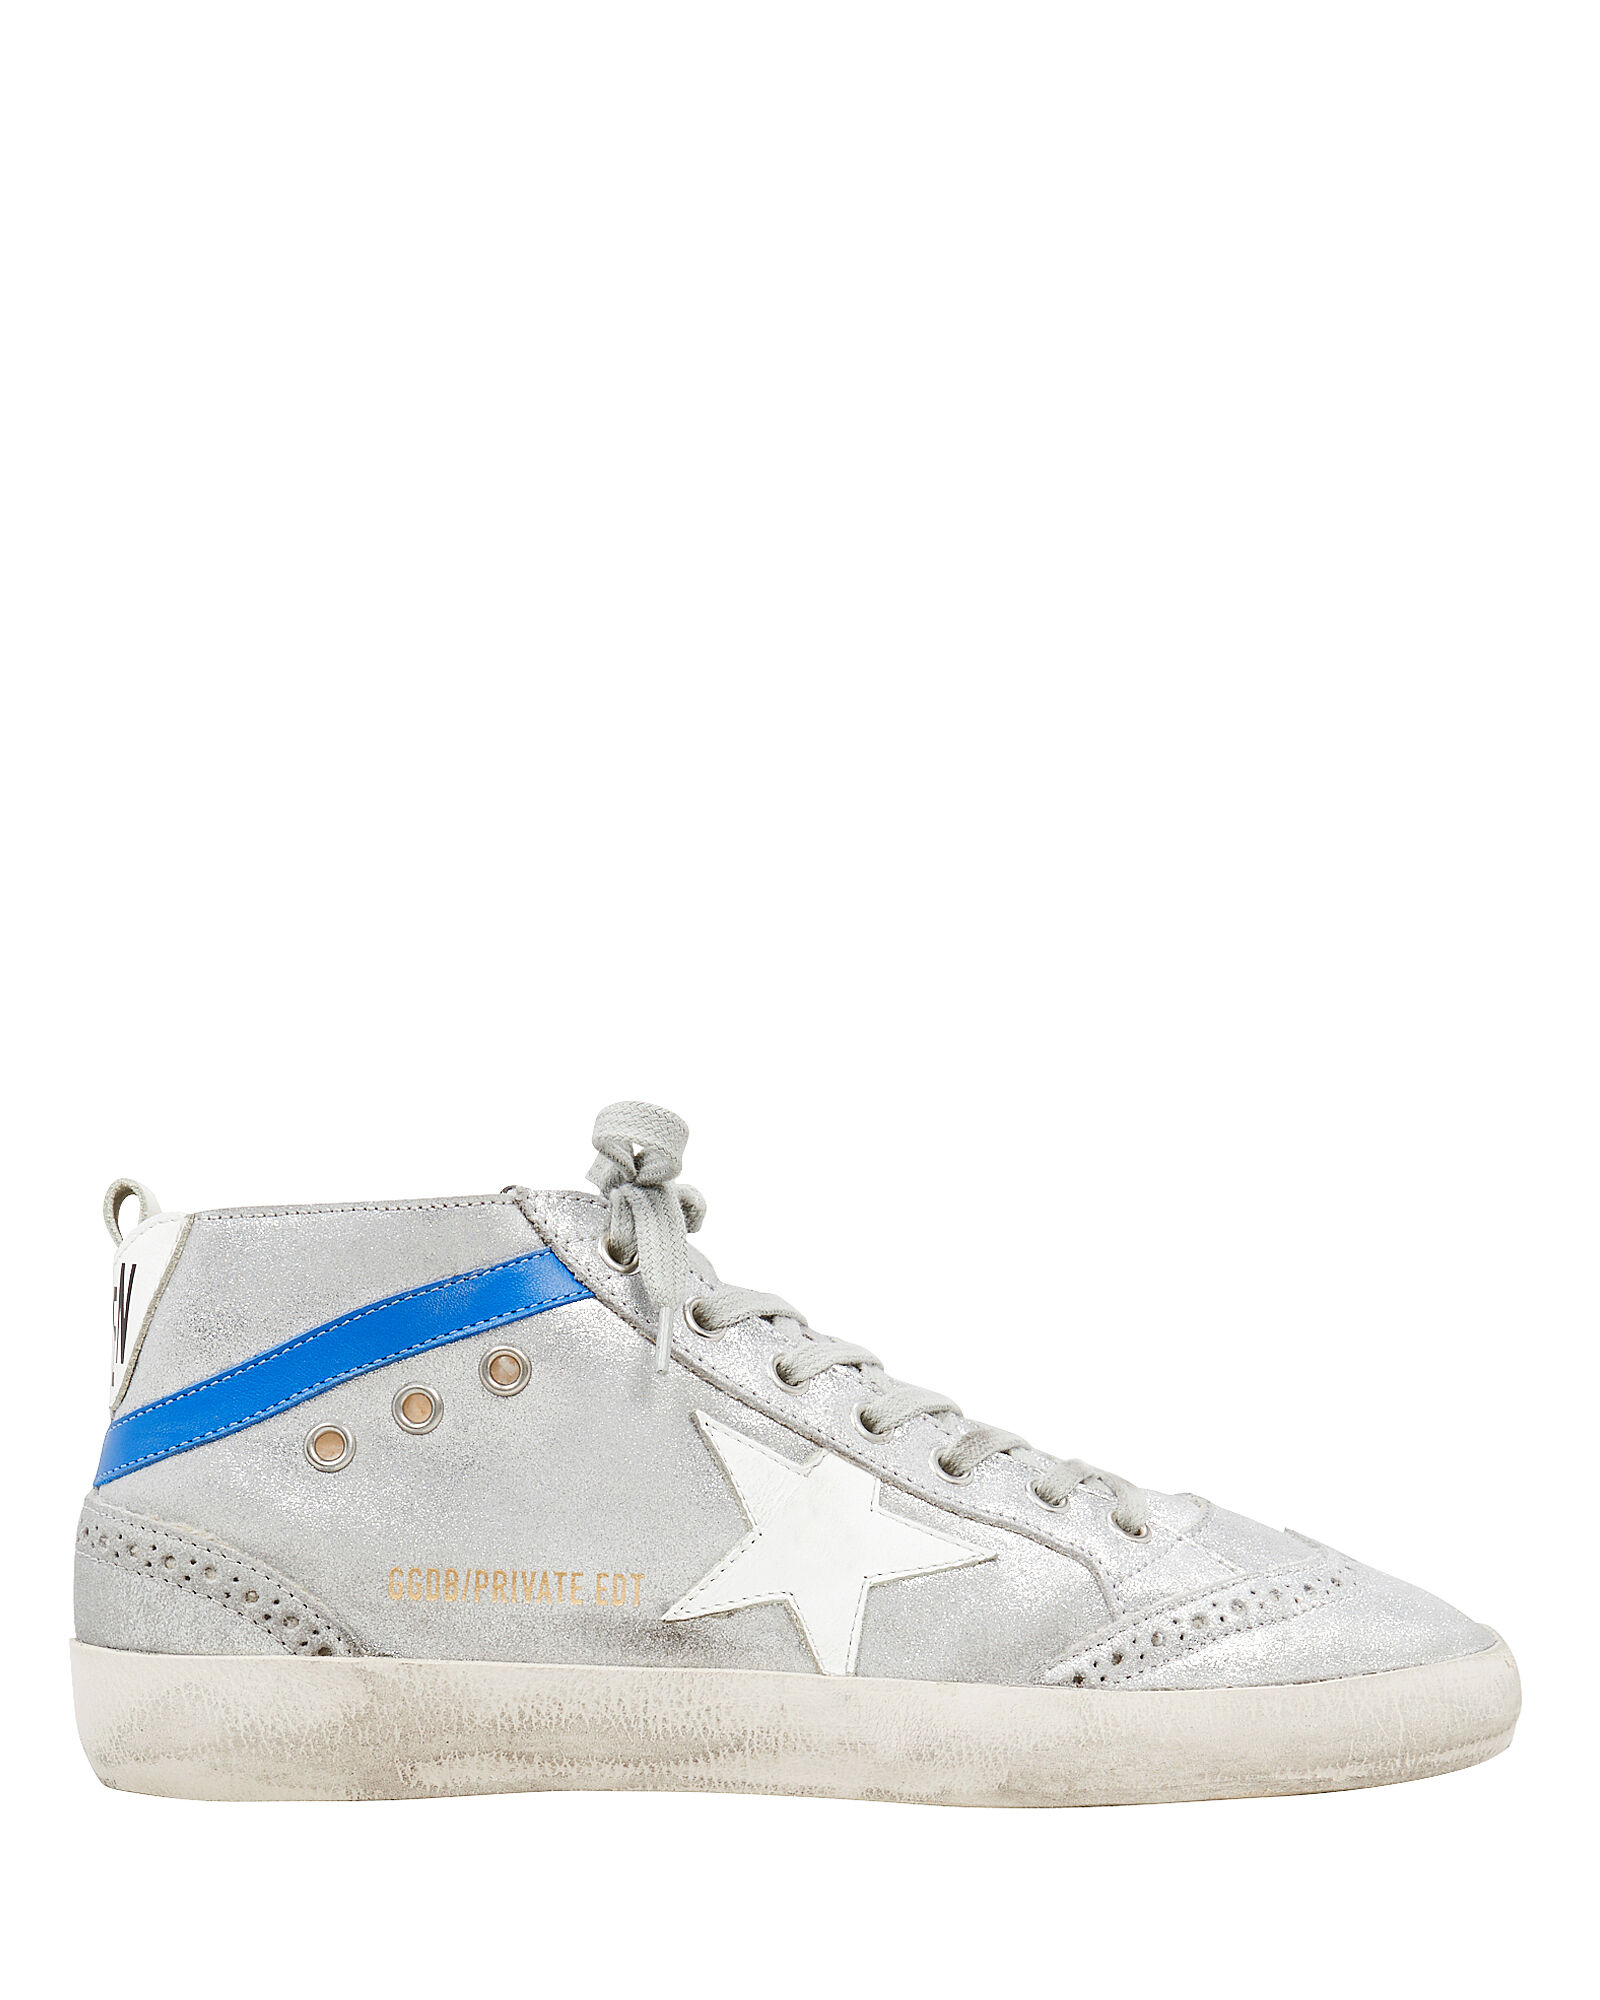 Mid Star Shearling Suede Silver Sneakers, SILVER, hi-res